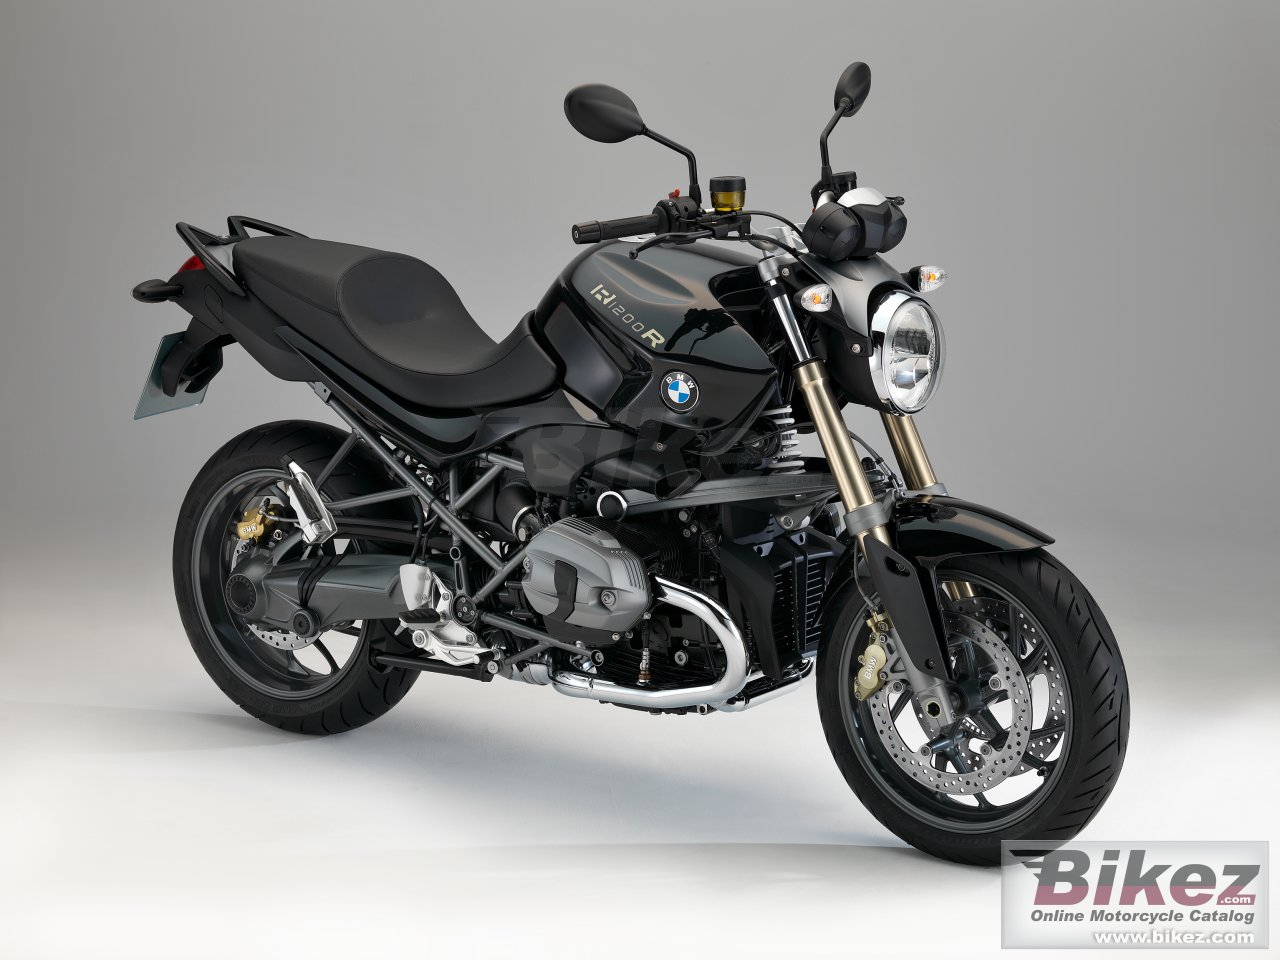 Big BMW r 1200 r picture and wallpaper from Bikez.com